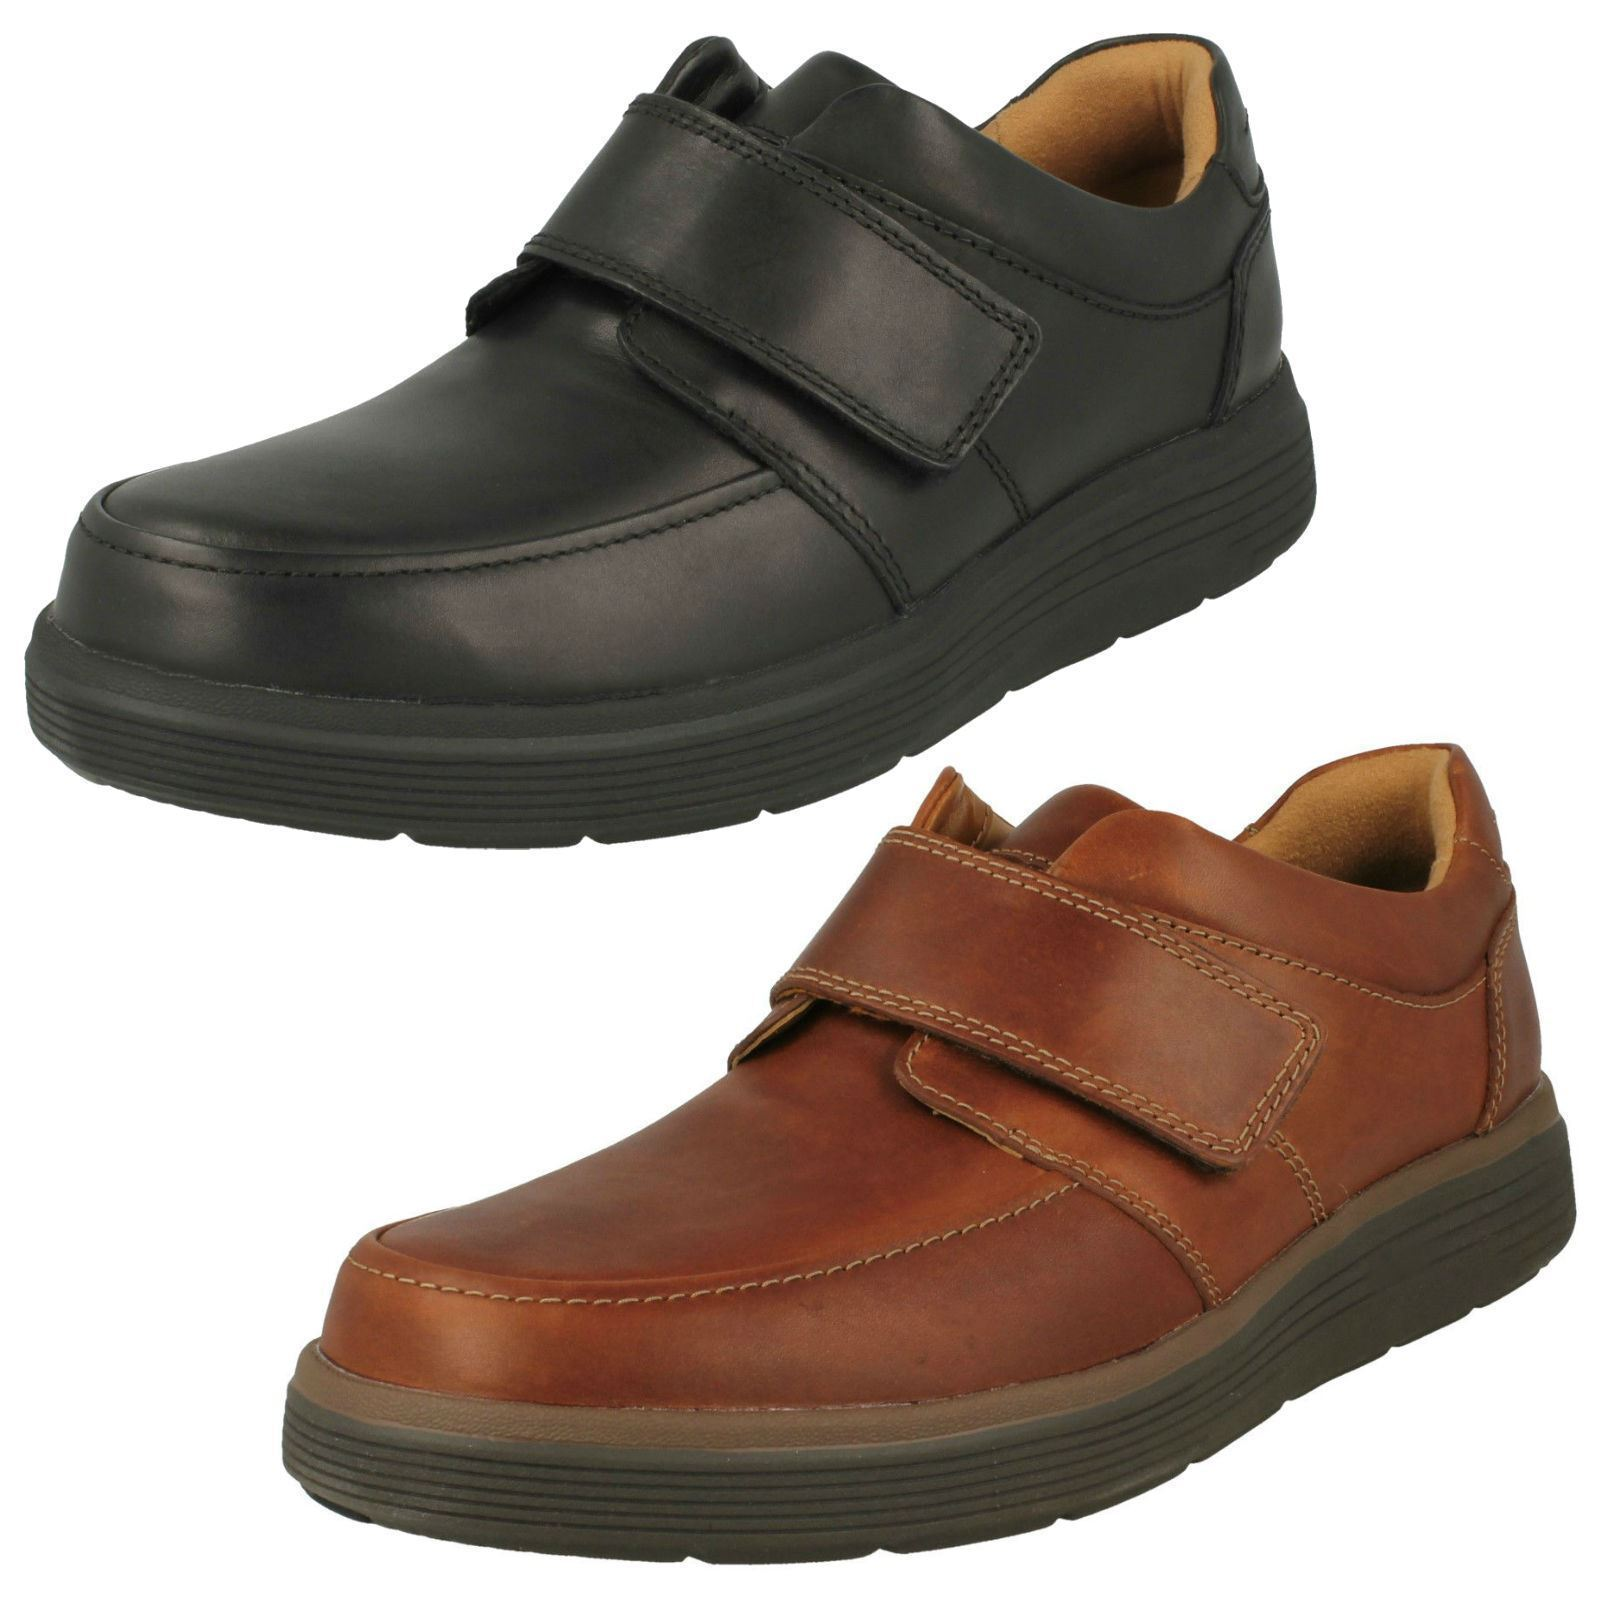 Mens Clarks Un Abode Strap Leather Hook & Loop Strap shoes WIDE H Fitting